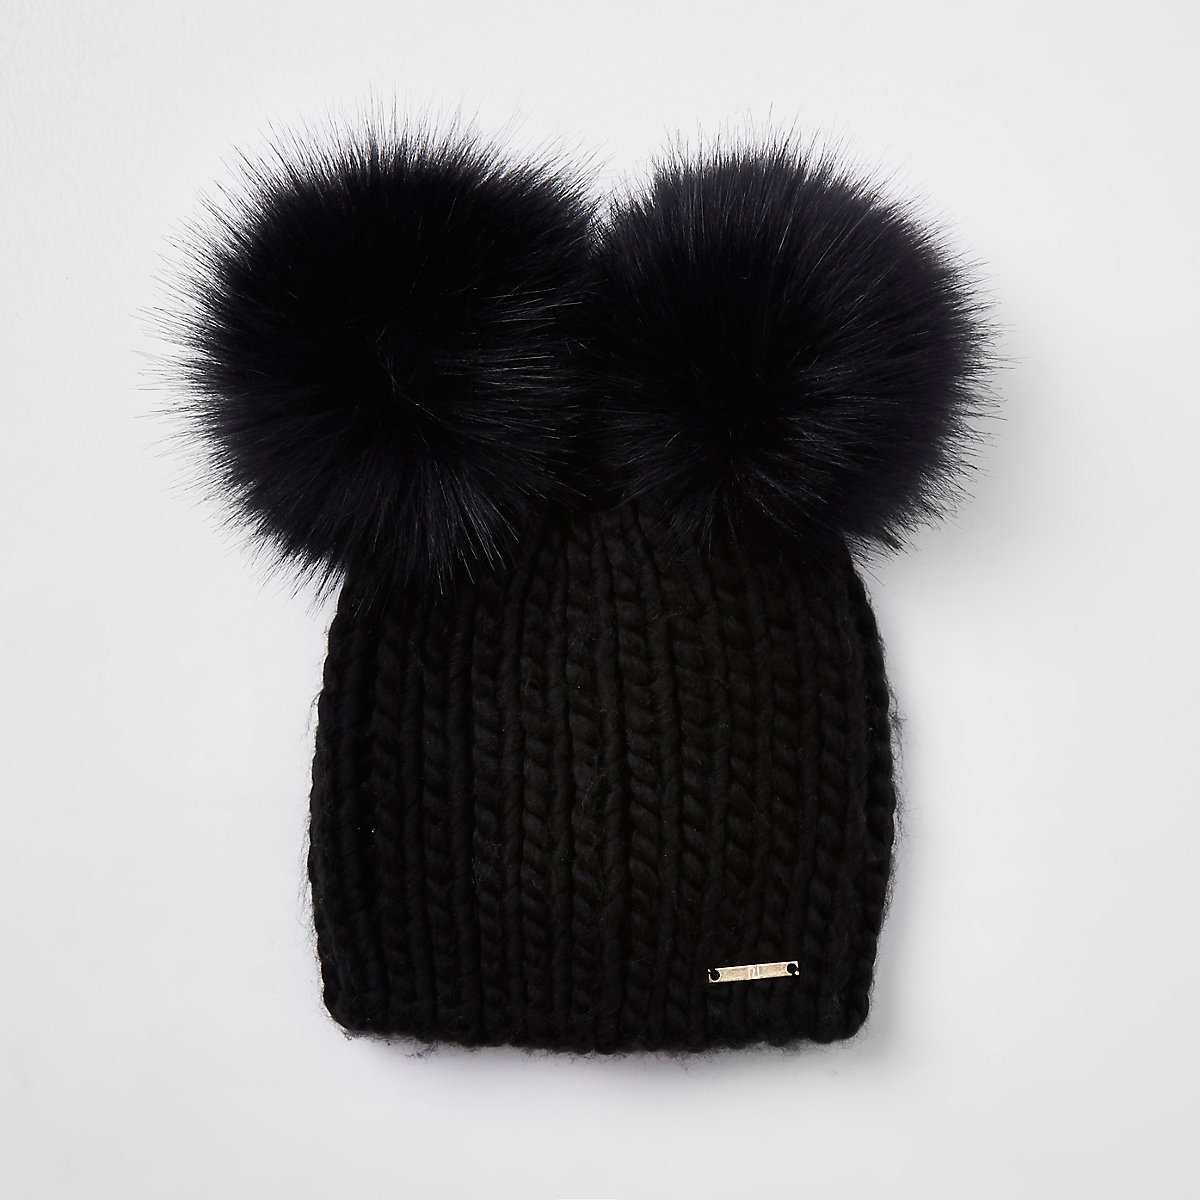 Black faux fur double pom pom beanie - Hats - Accessories - women 5c94b8721f5